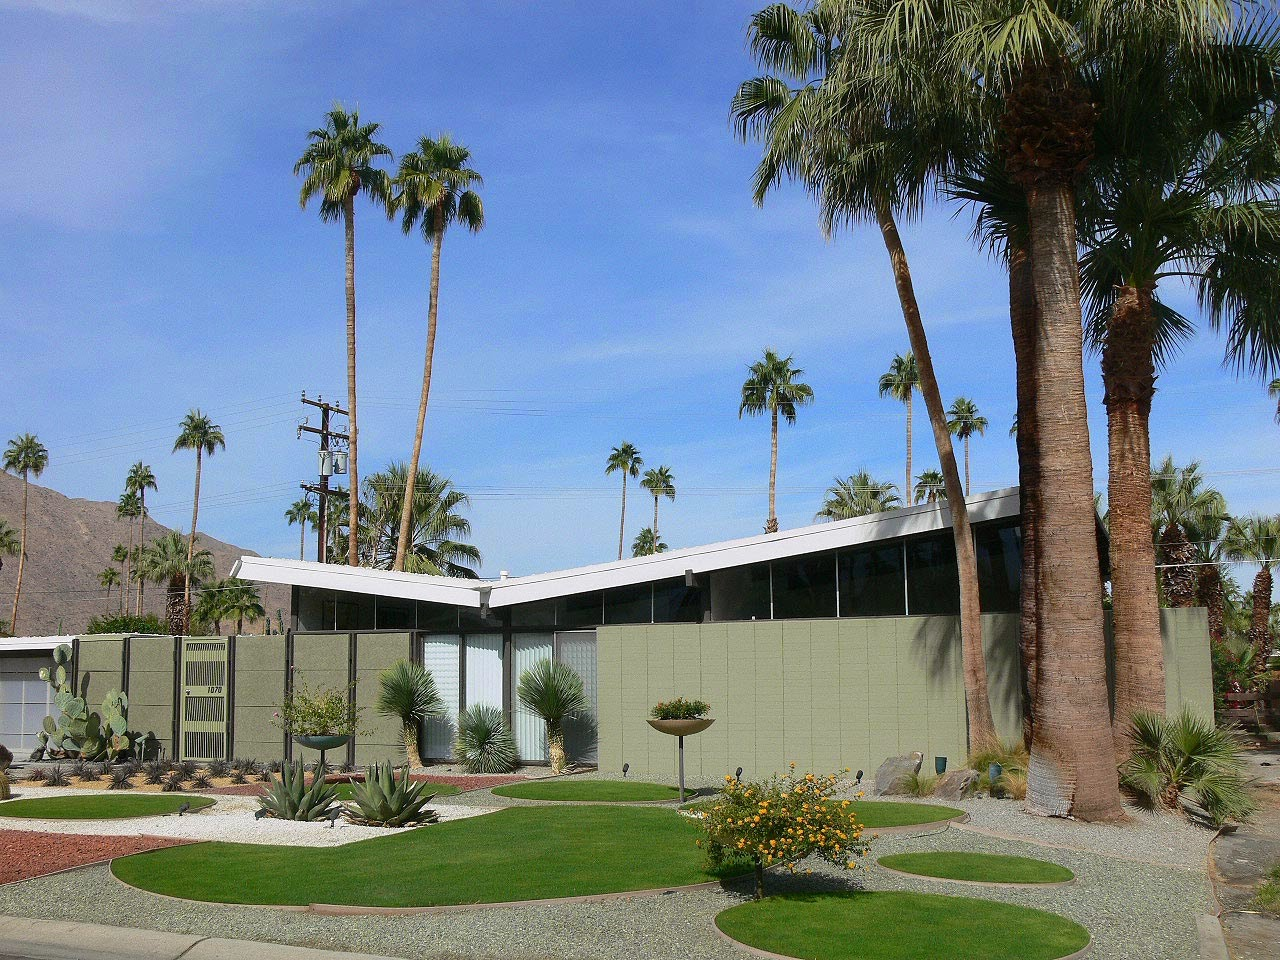 The style saloniste golden days designer brian dittmar for Property in palm springs